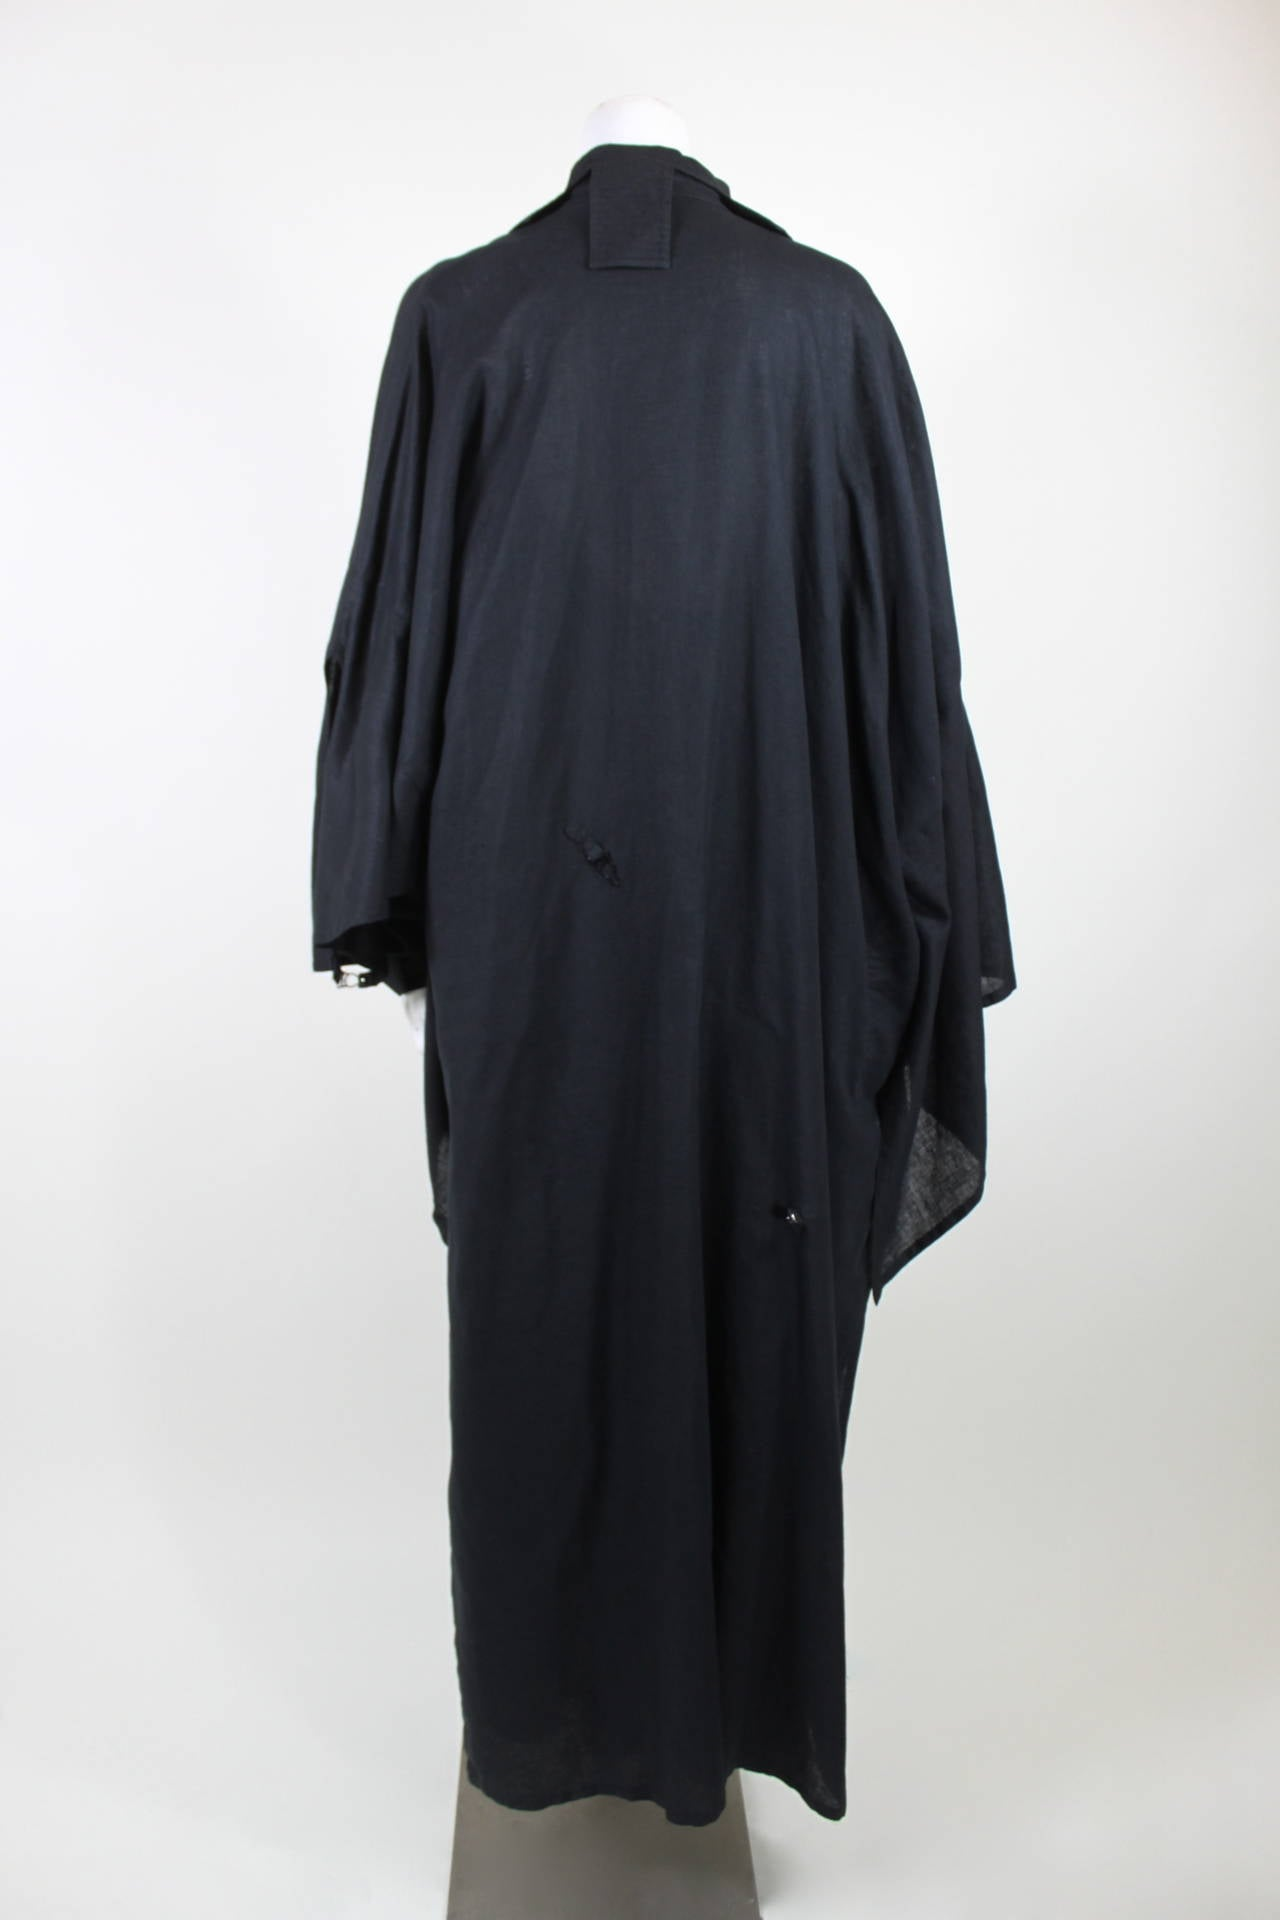 Kansai Black Linen Dress with Cocoon Coat 8